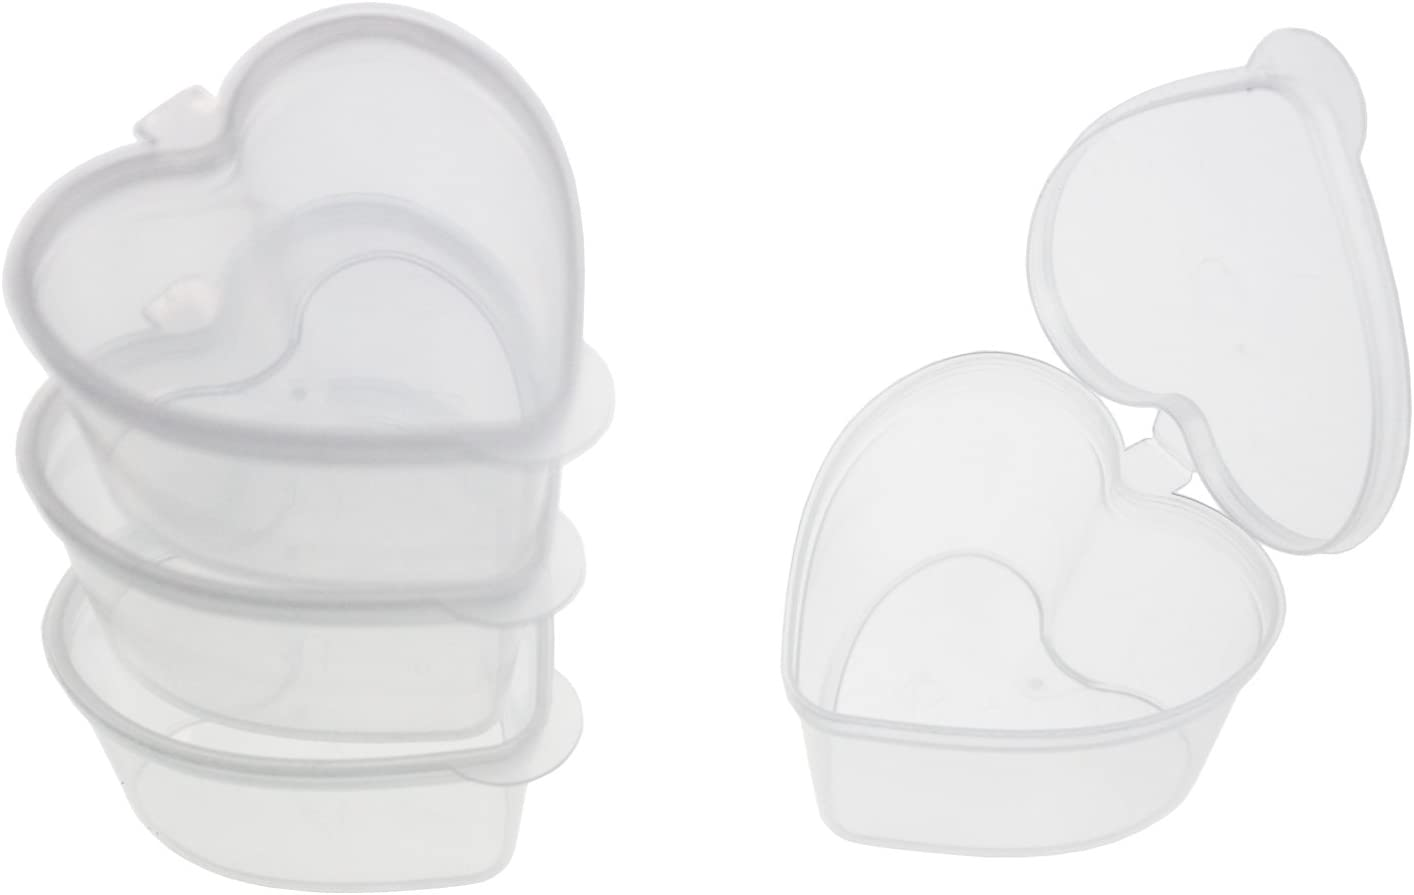 32 Pieces Heart Shaped Slime Storage Containers Transparent Plastic Box with Lids for 20g Slime